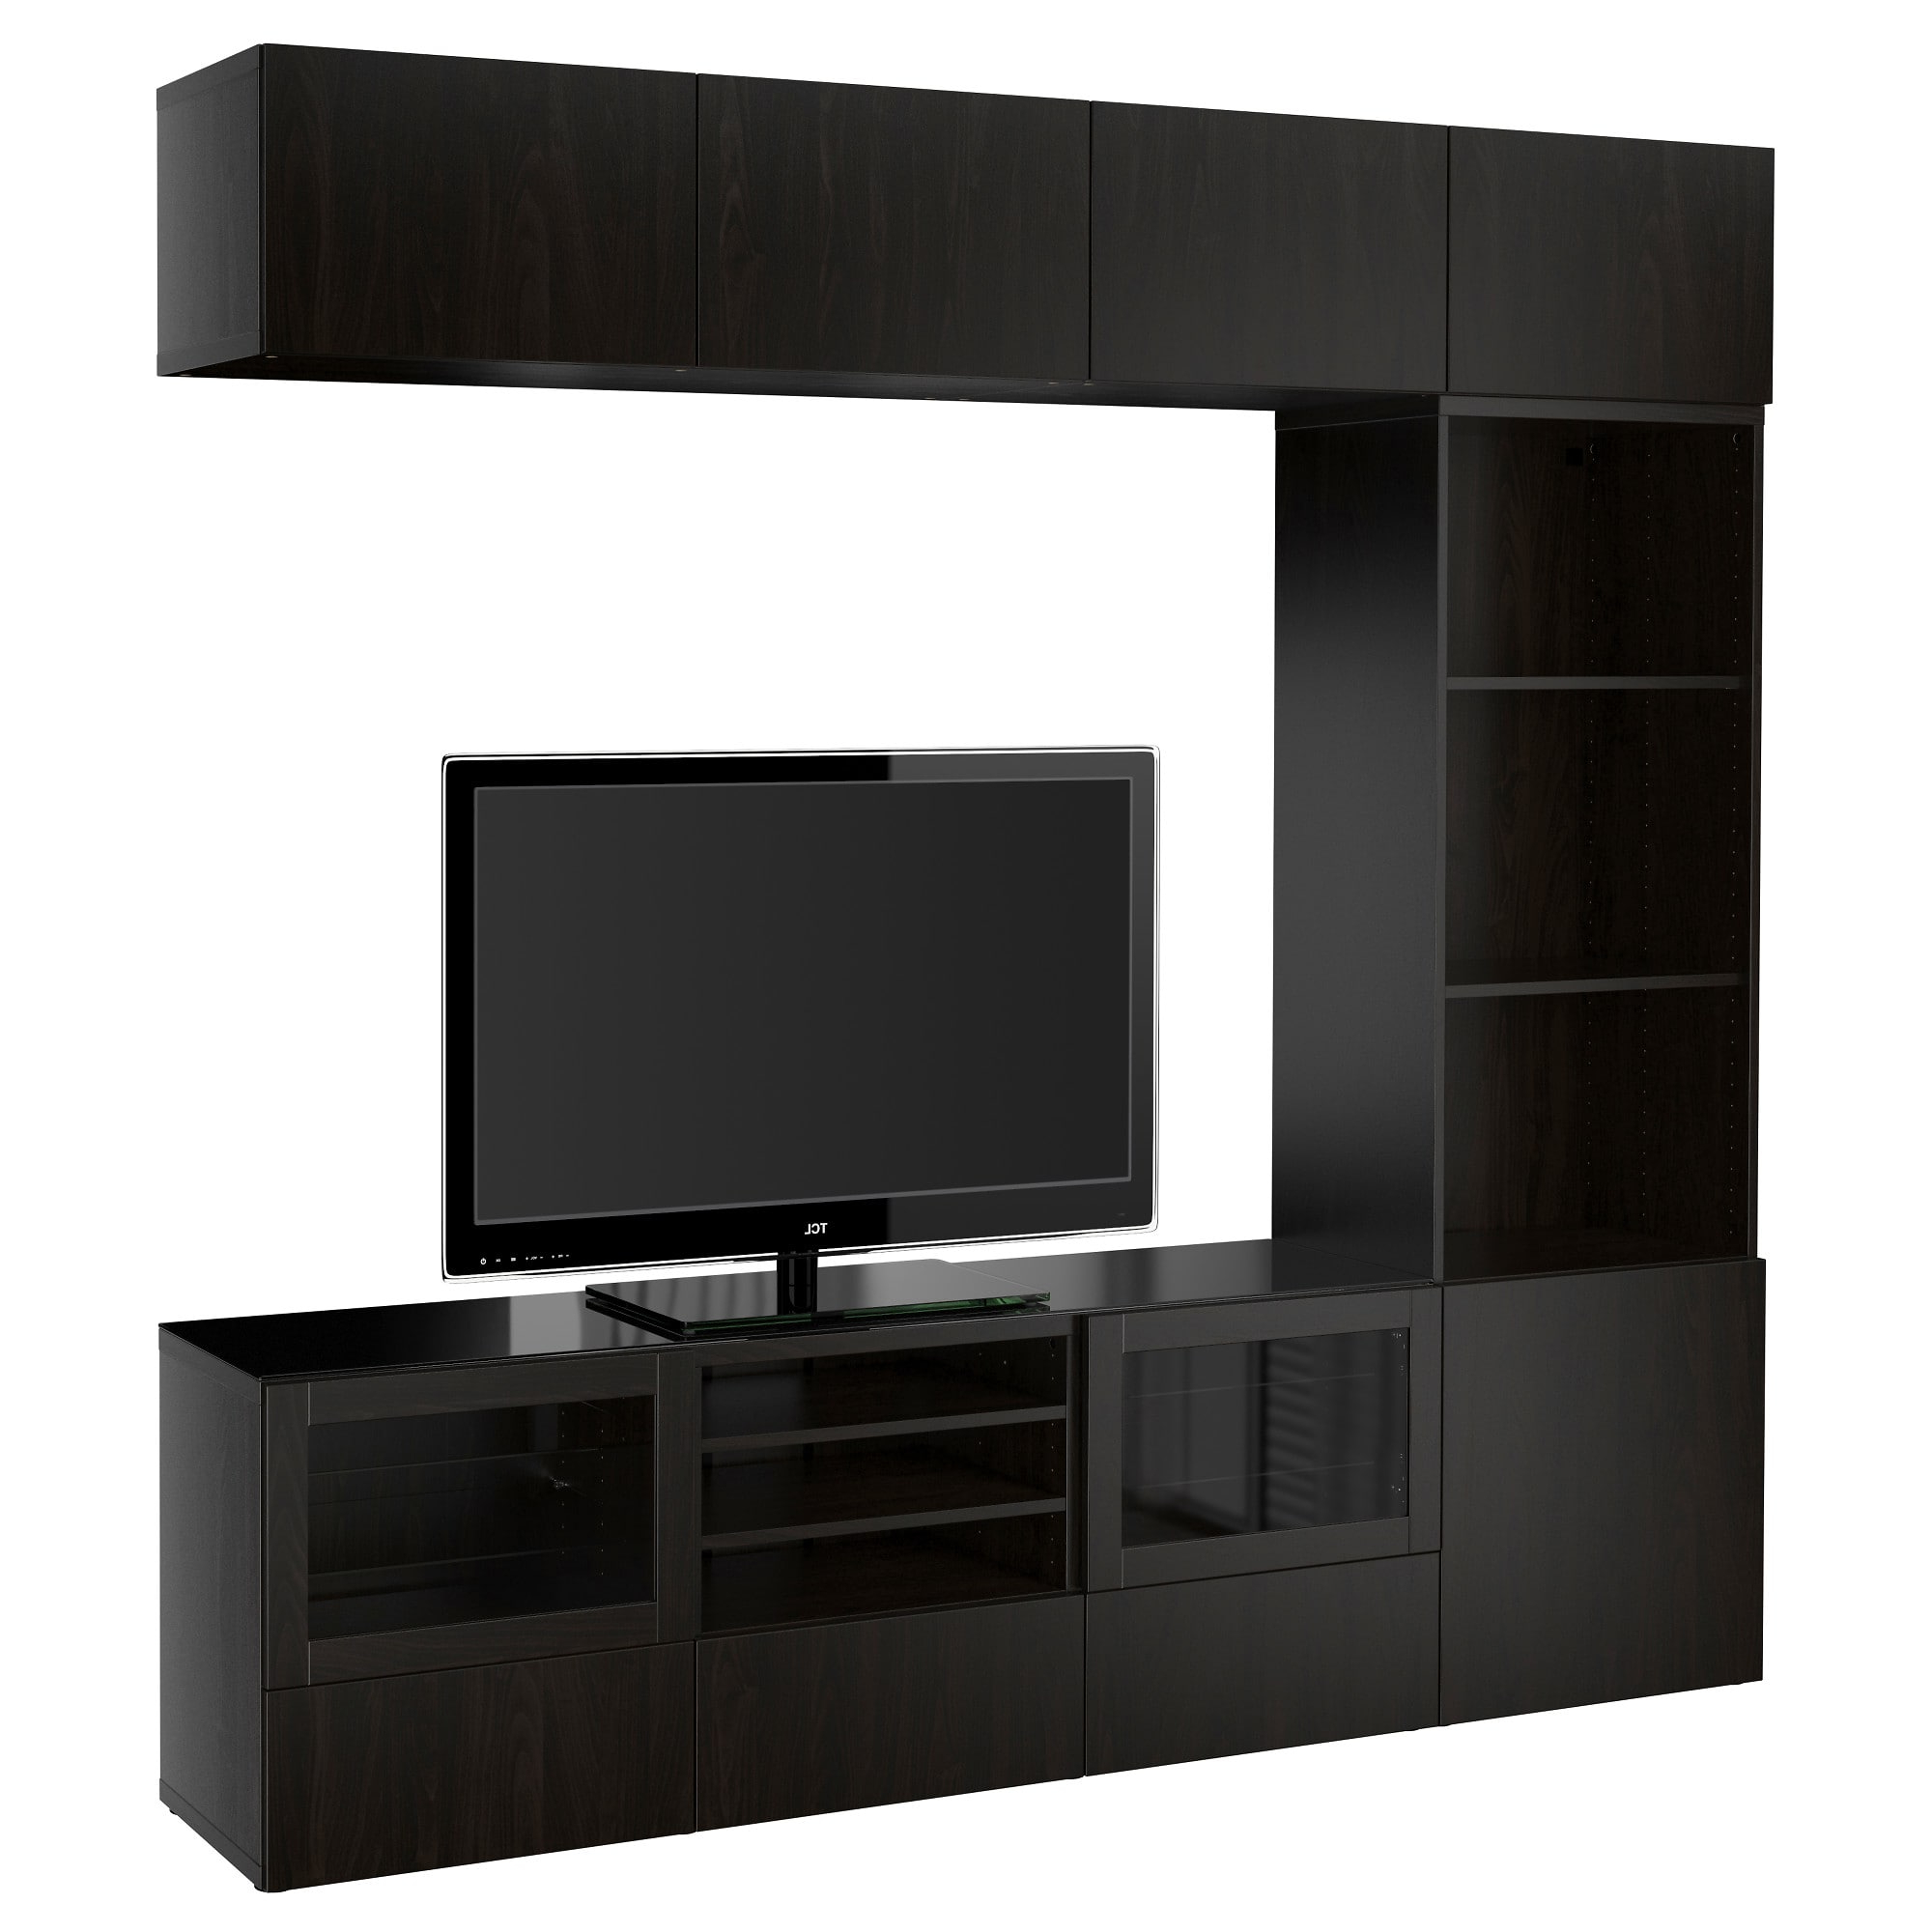 Ikea Intended For Most Current Black Tv Cabinets With Drawers (View 8 of 20)